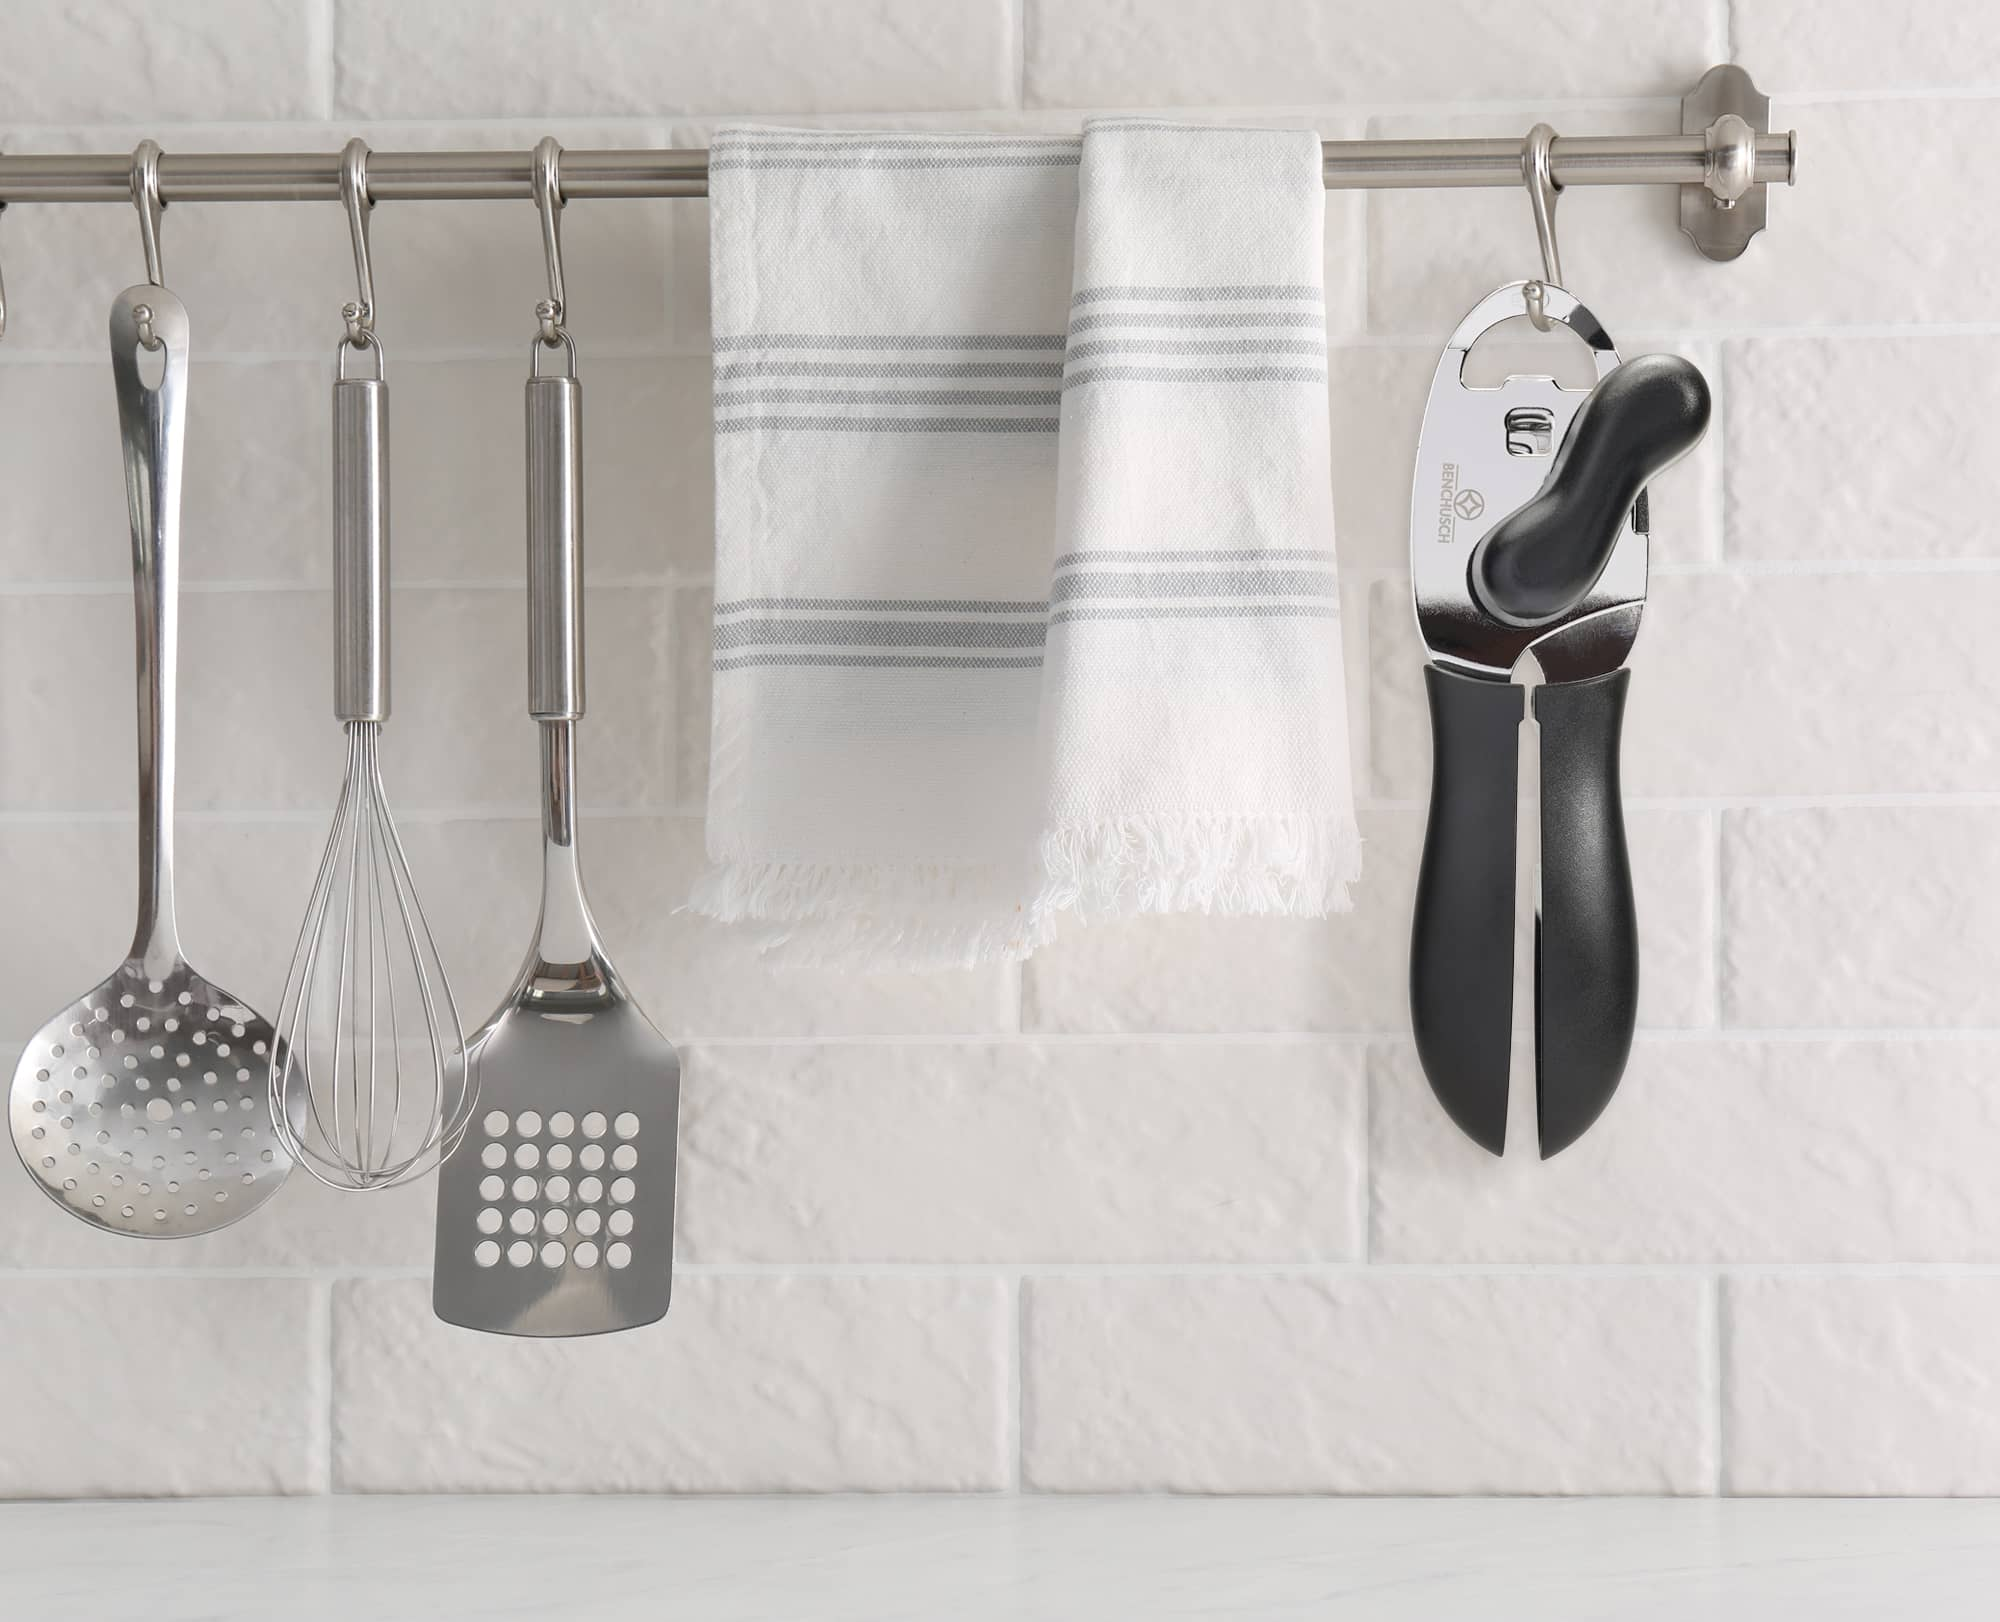 Benchusch Mordena Can Opener with Easy Turn Knob hung on the kitchen with other utensils